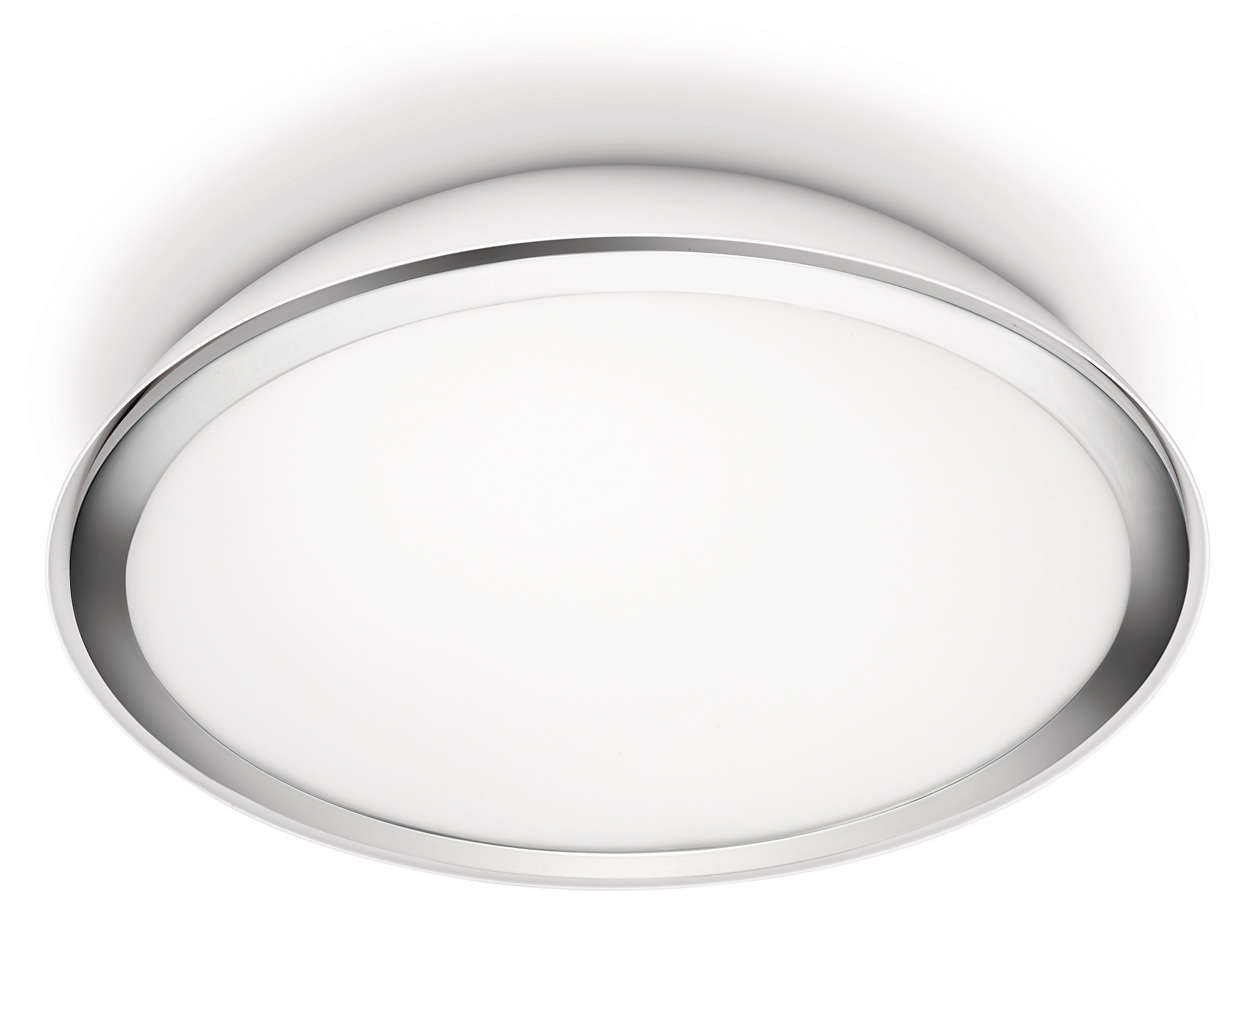 Ceiling light 320633116 philips download image aloadofball Choice Image